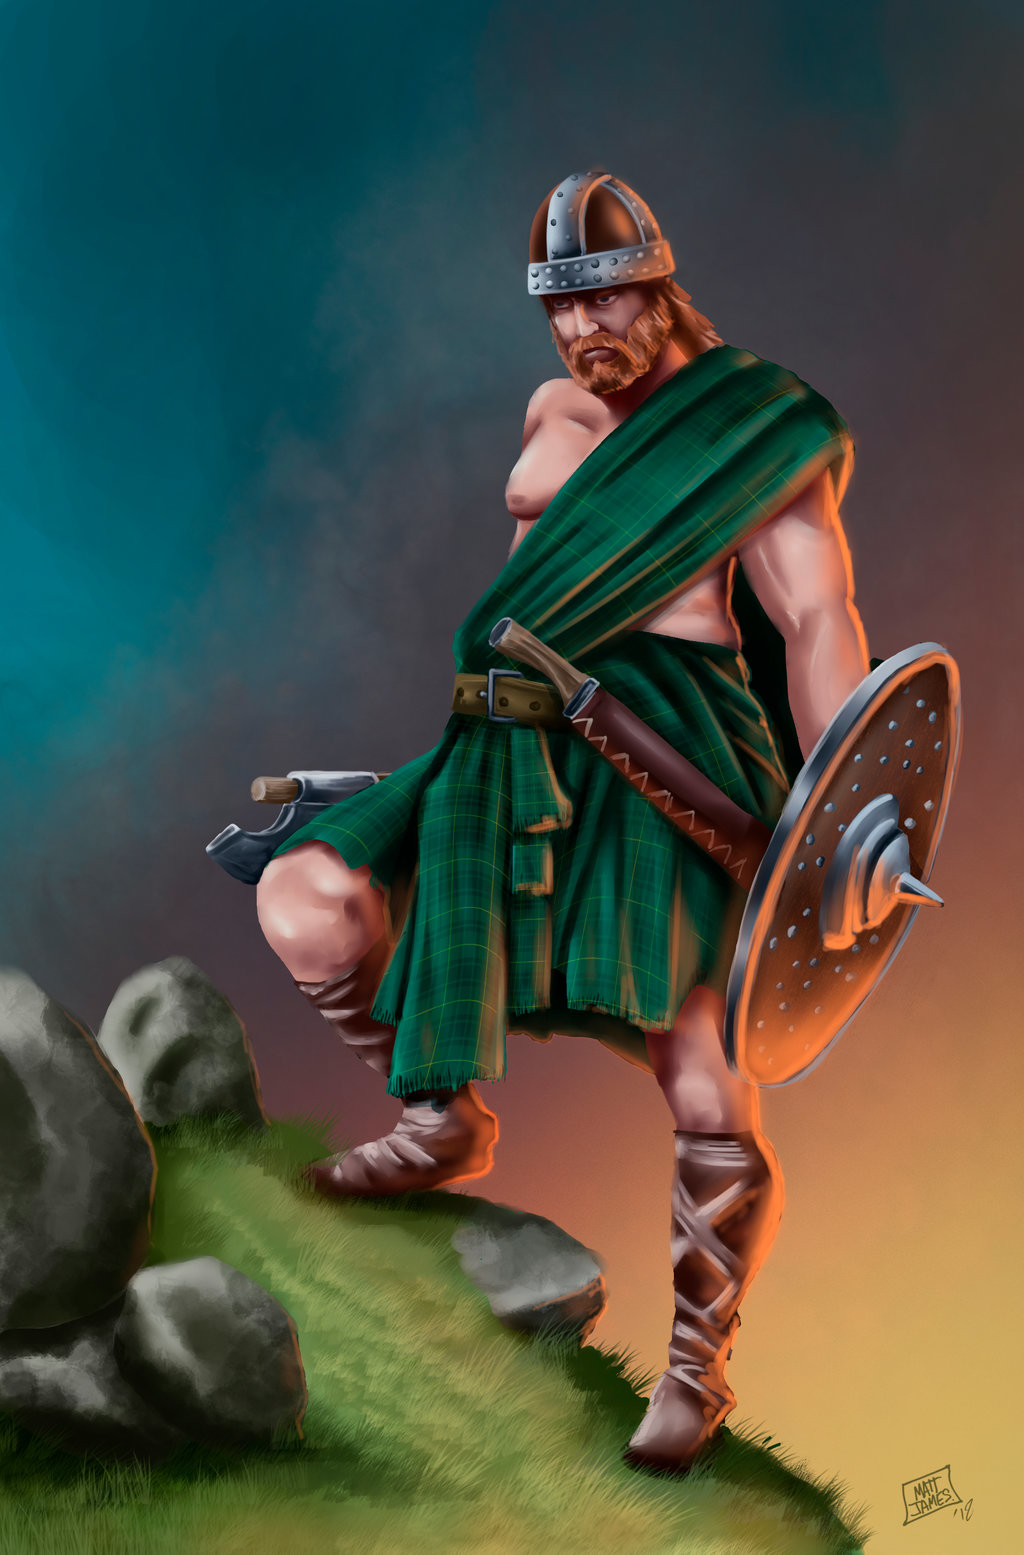 Matt james highland barbarian by snakebitartstudio dc4s4oo